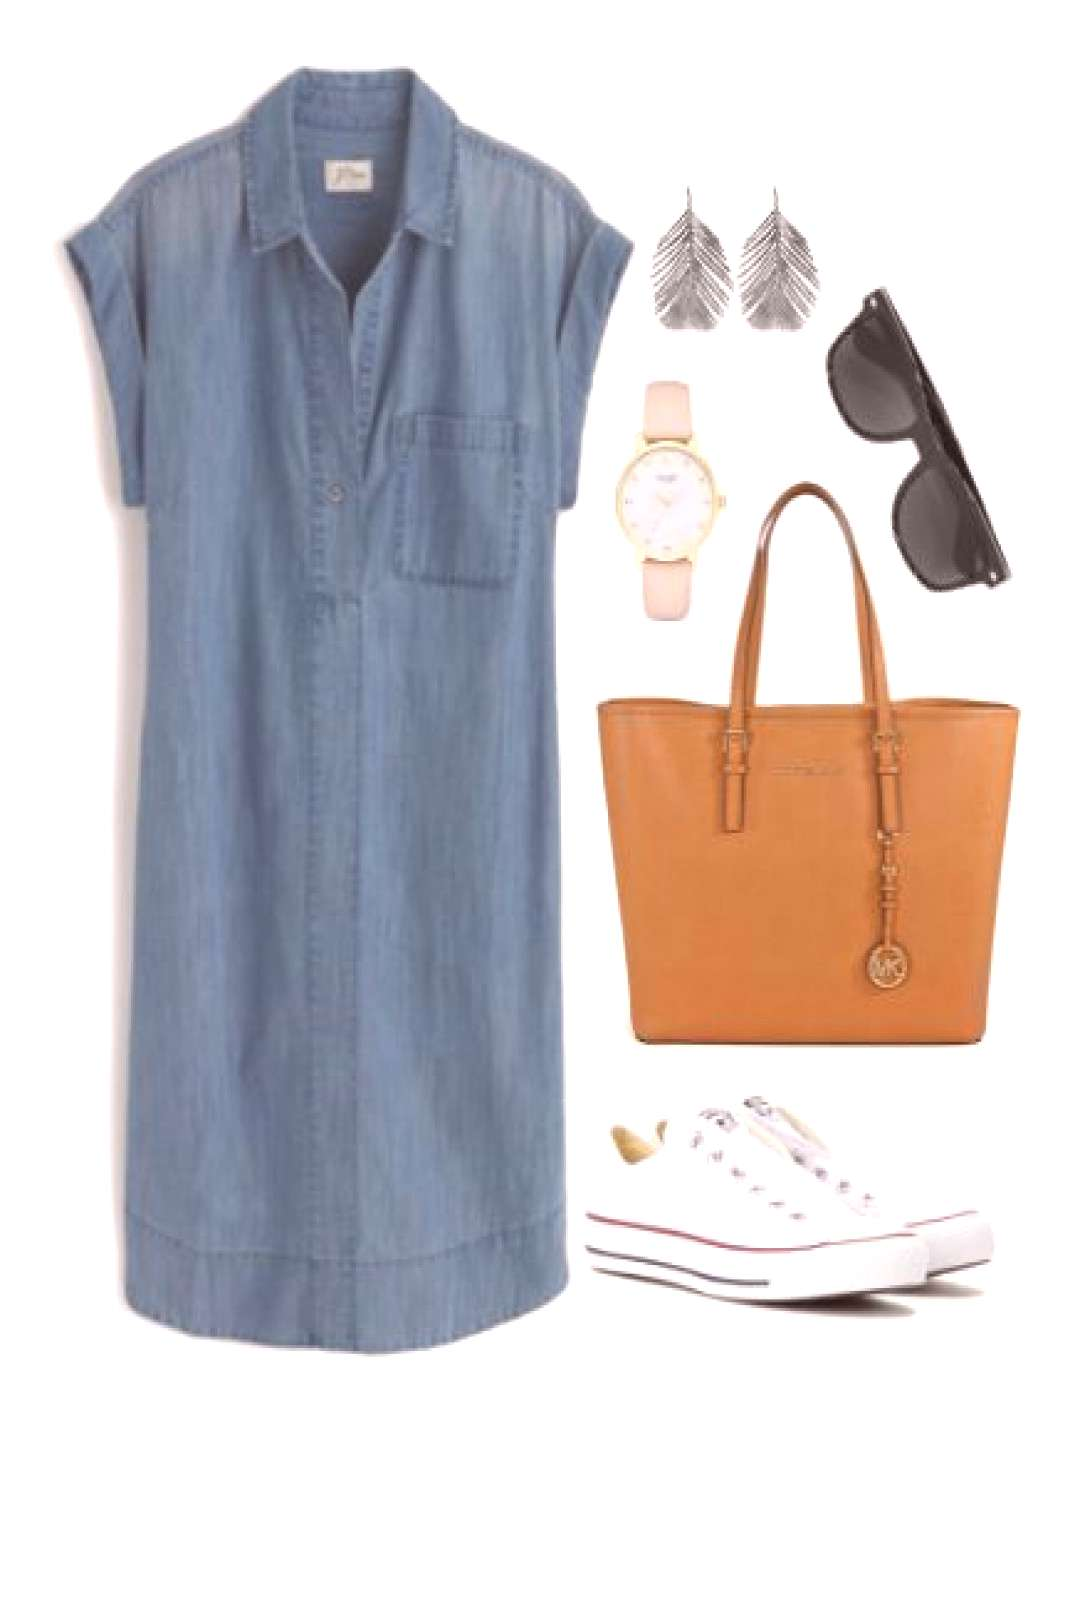 A white Converse outfit is both stylish and comfortable. Youll be ready for traveling, running erra